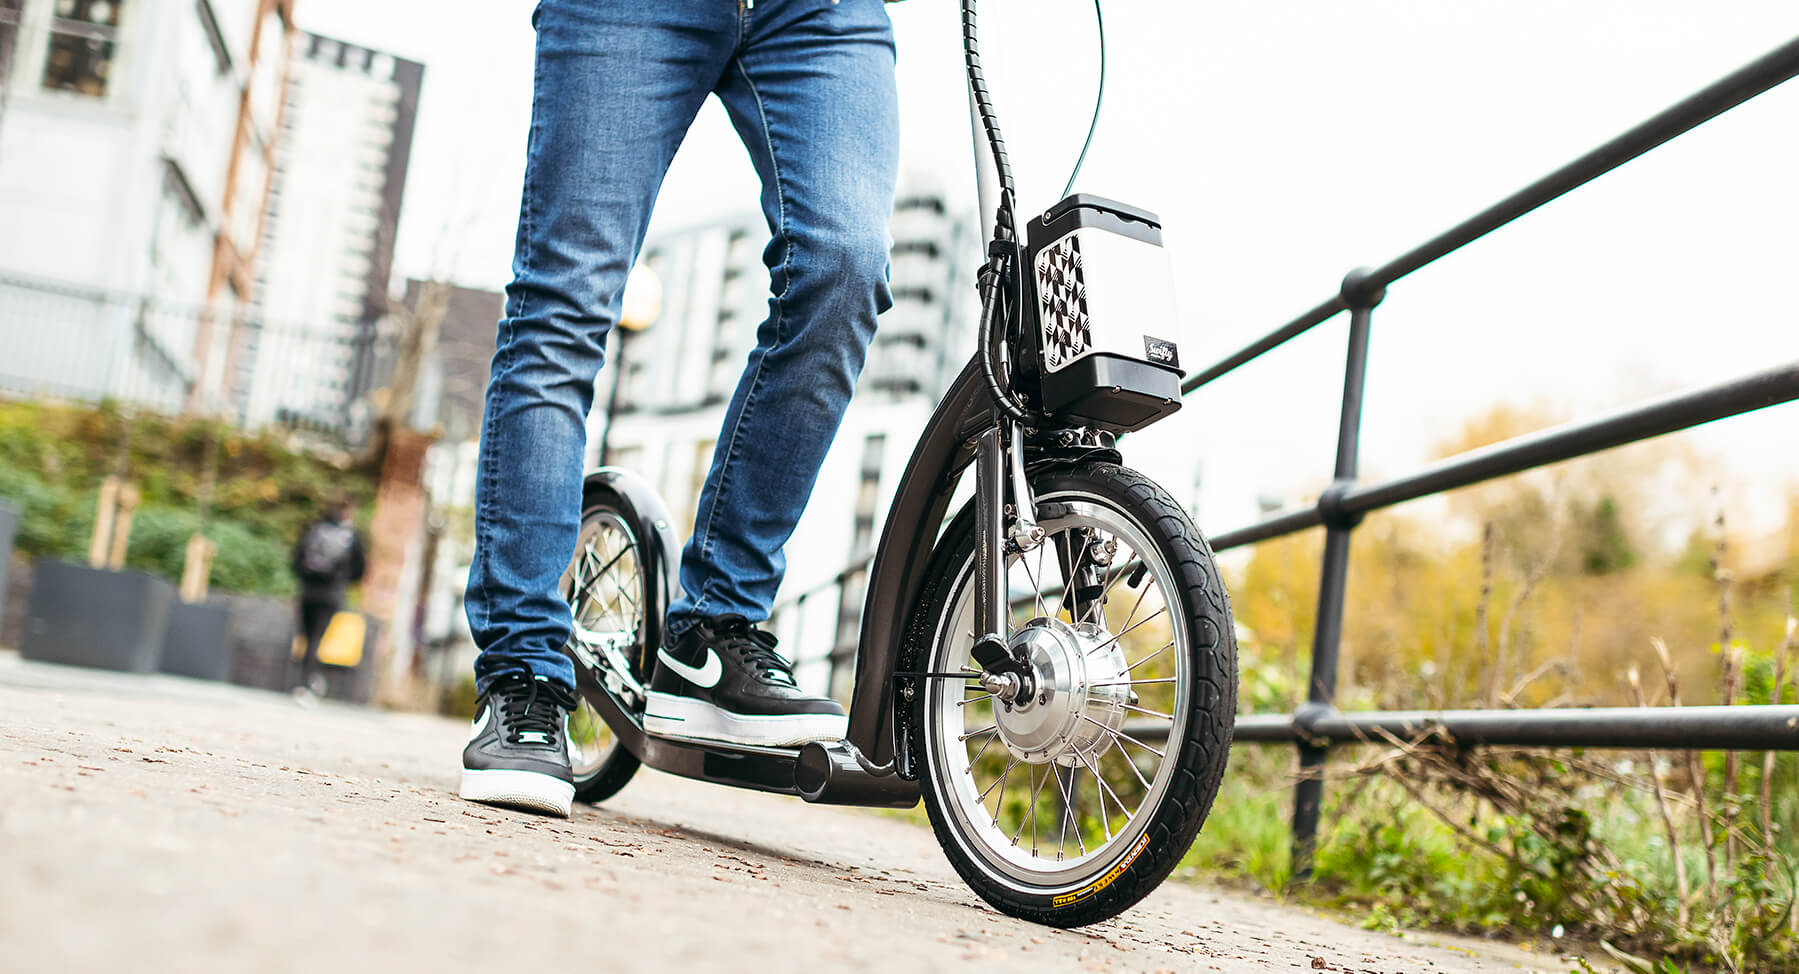 best scooter for tall riders, best scooter for 6 feet tall, scooter tall rider